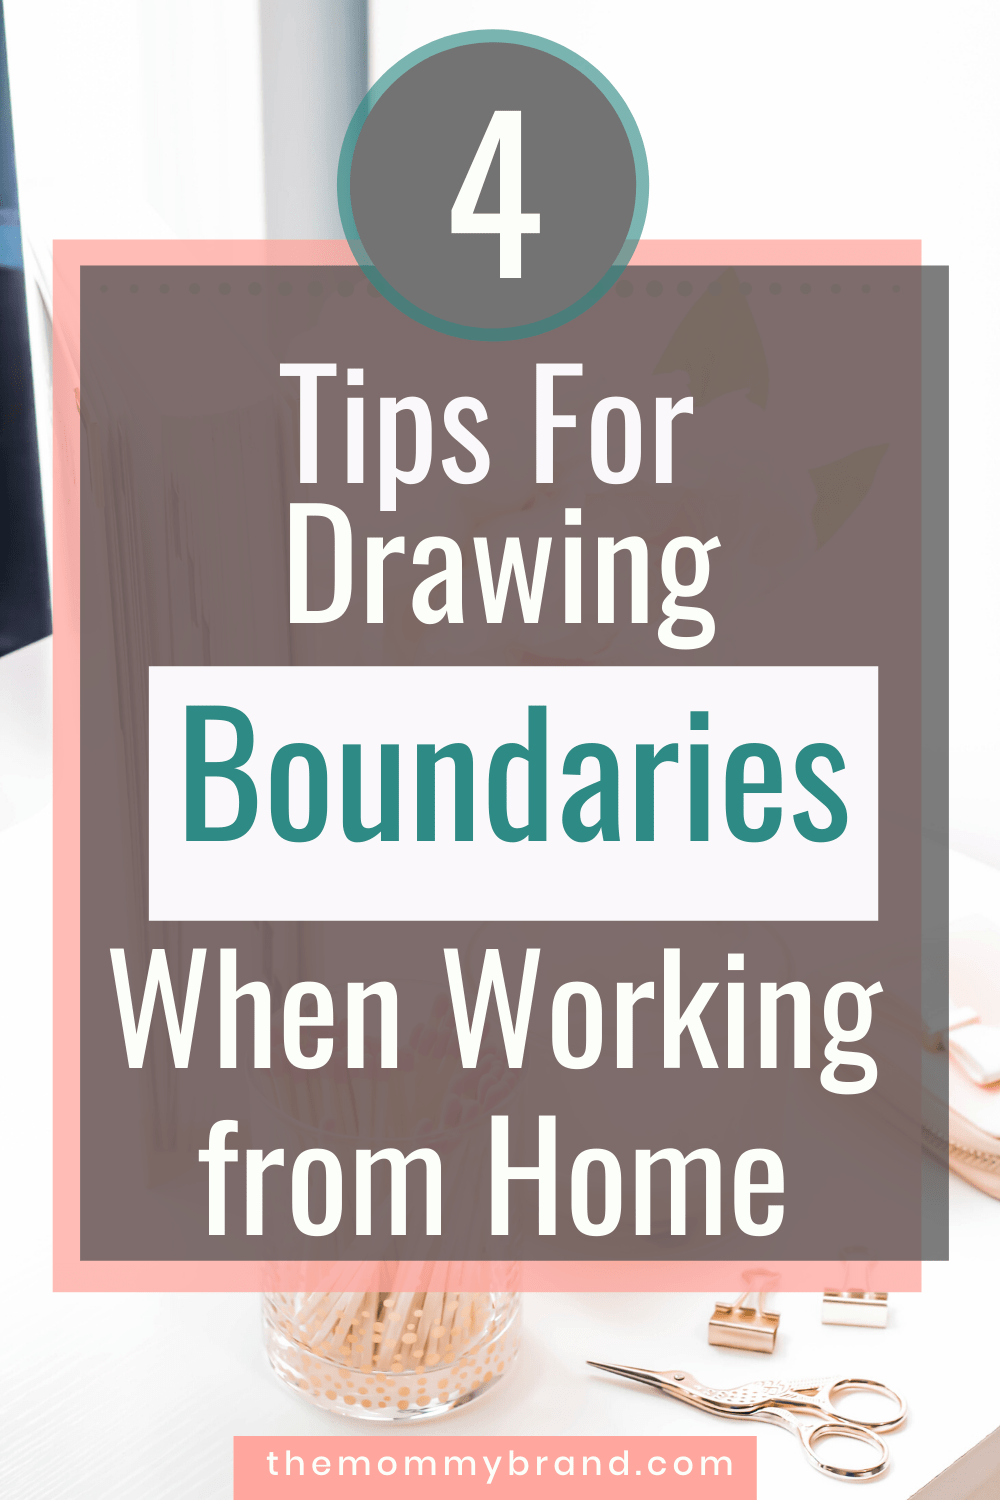 Drawing boundaries when working from home